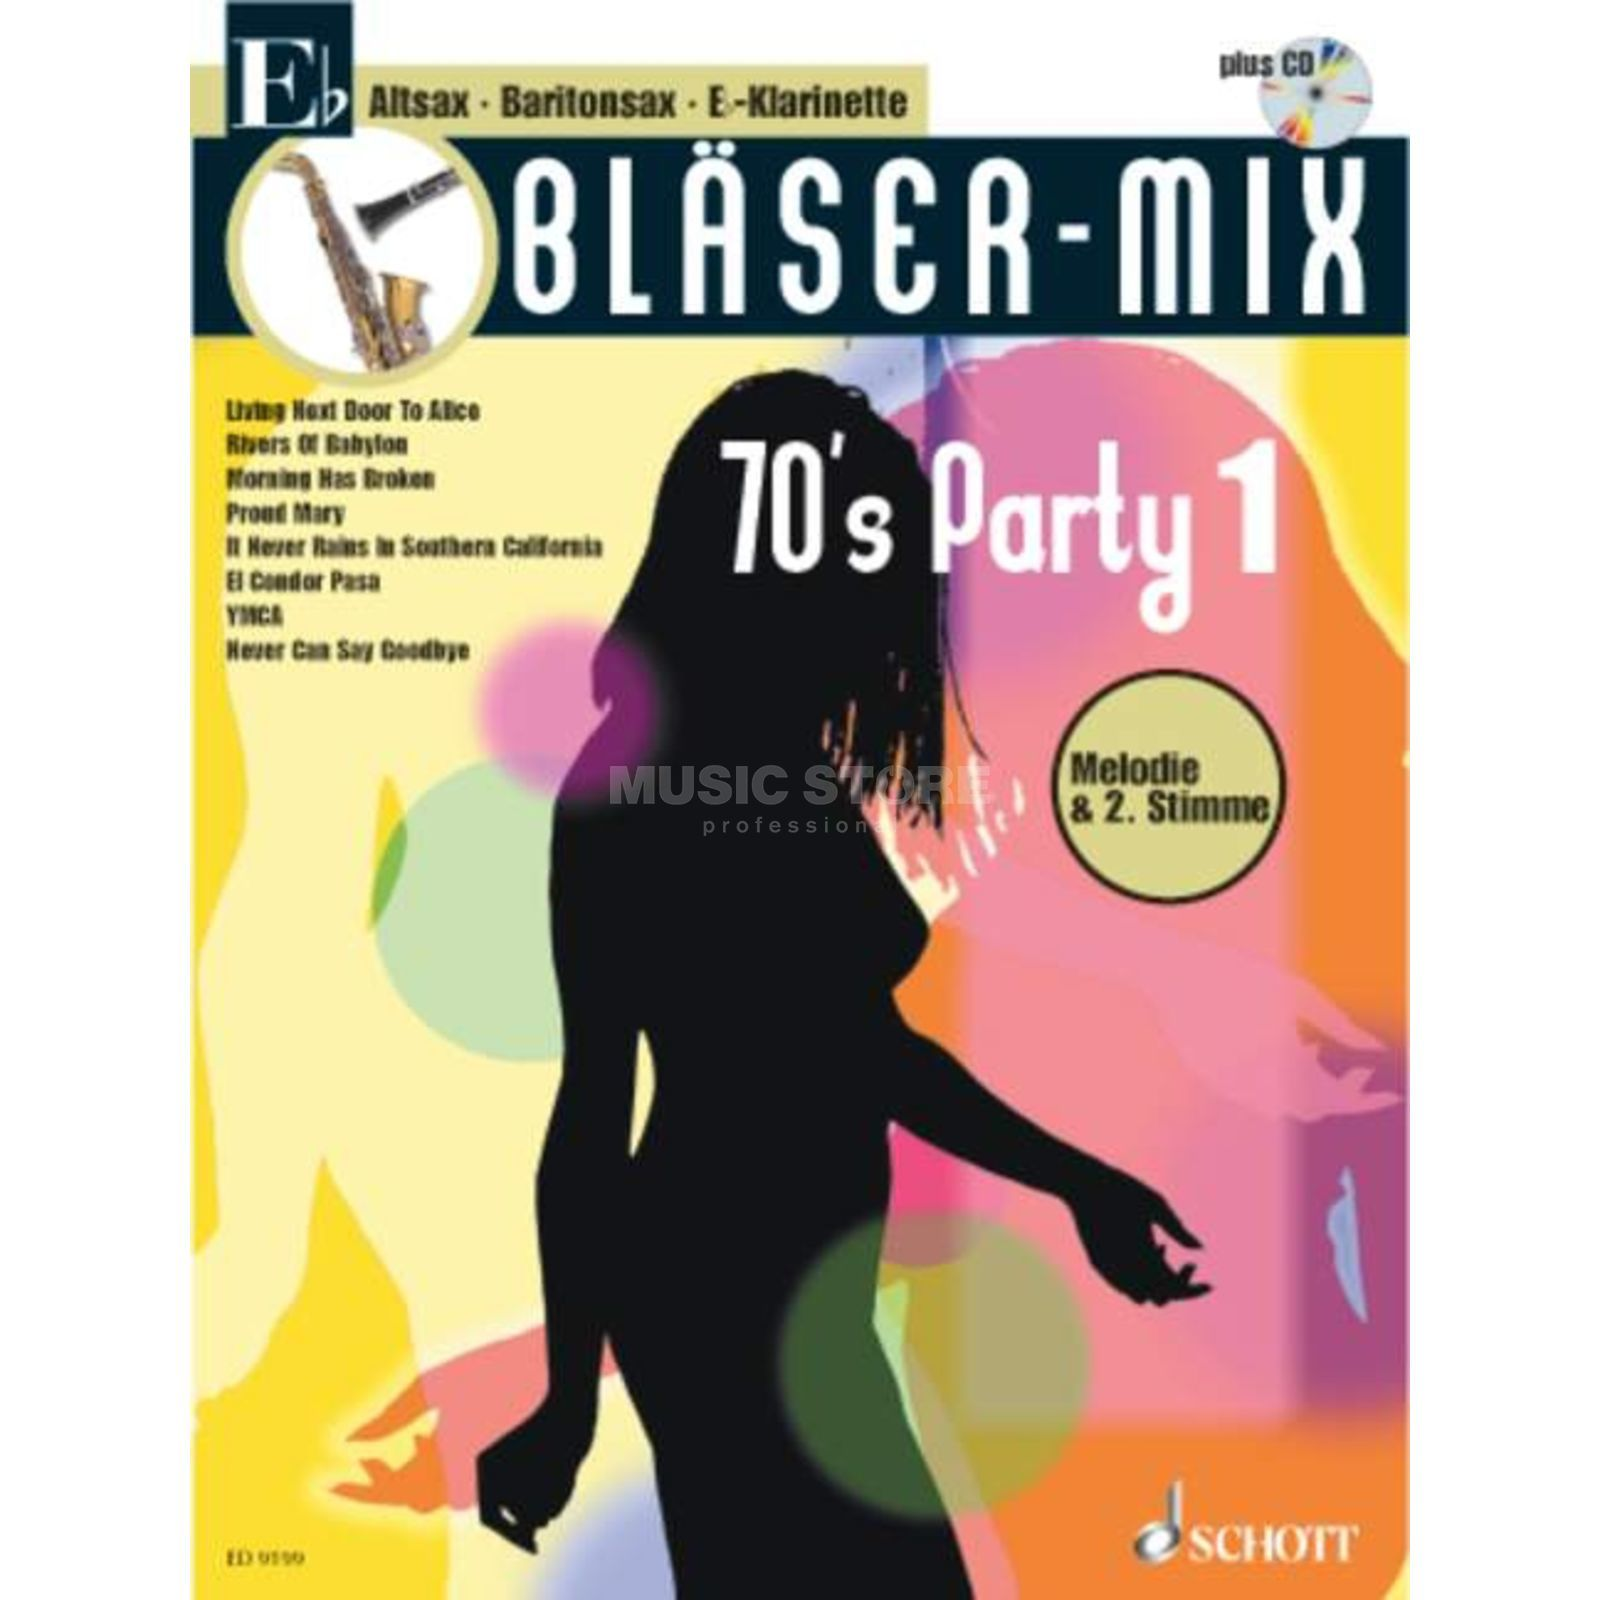 Schott Music 70's Party, Bläser-Mix Play-along Eb-Instrumente Produktbillede